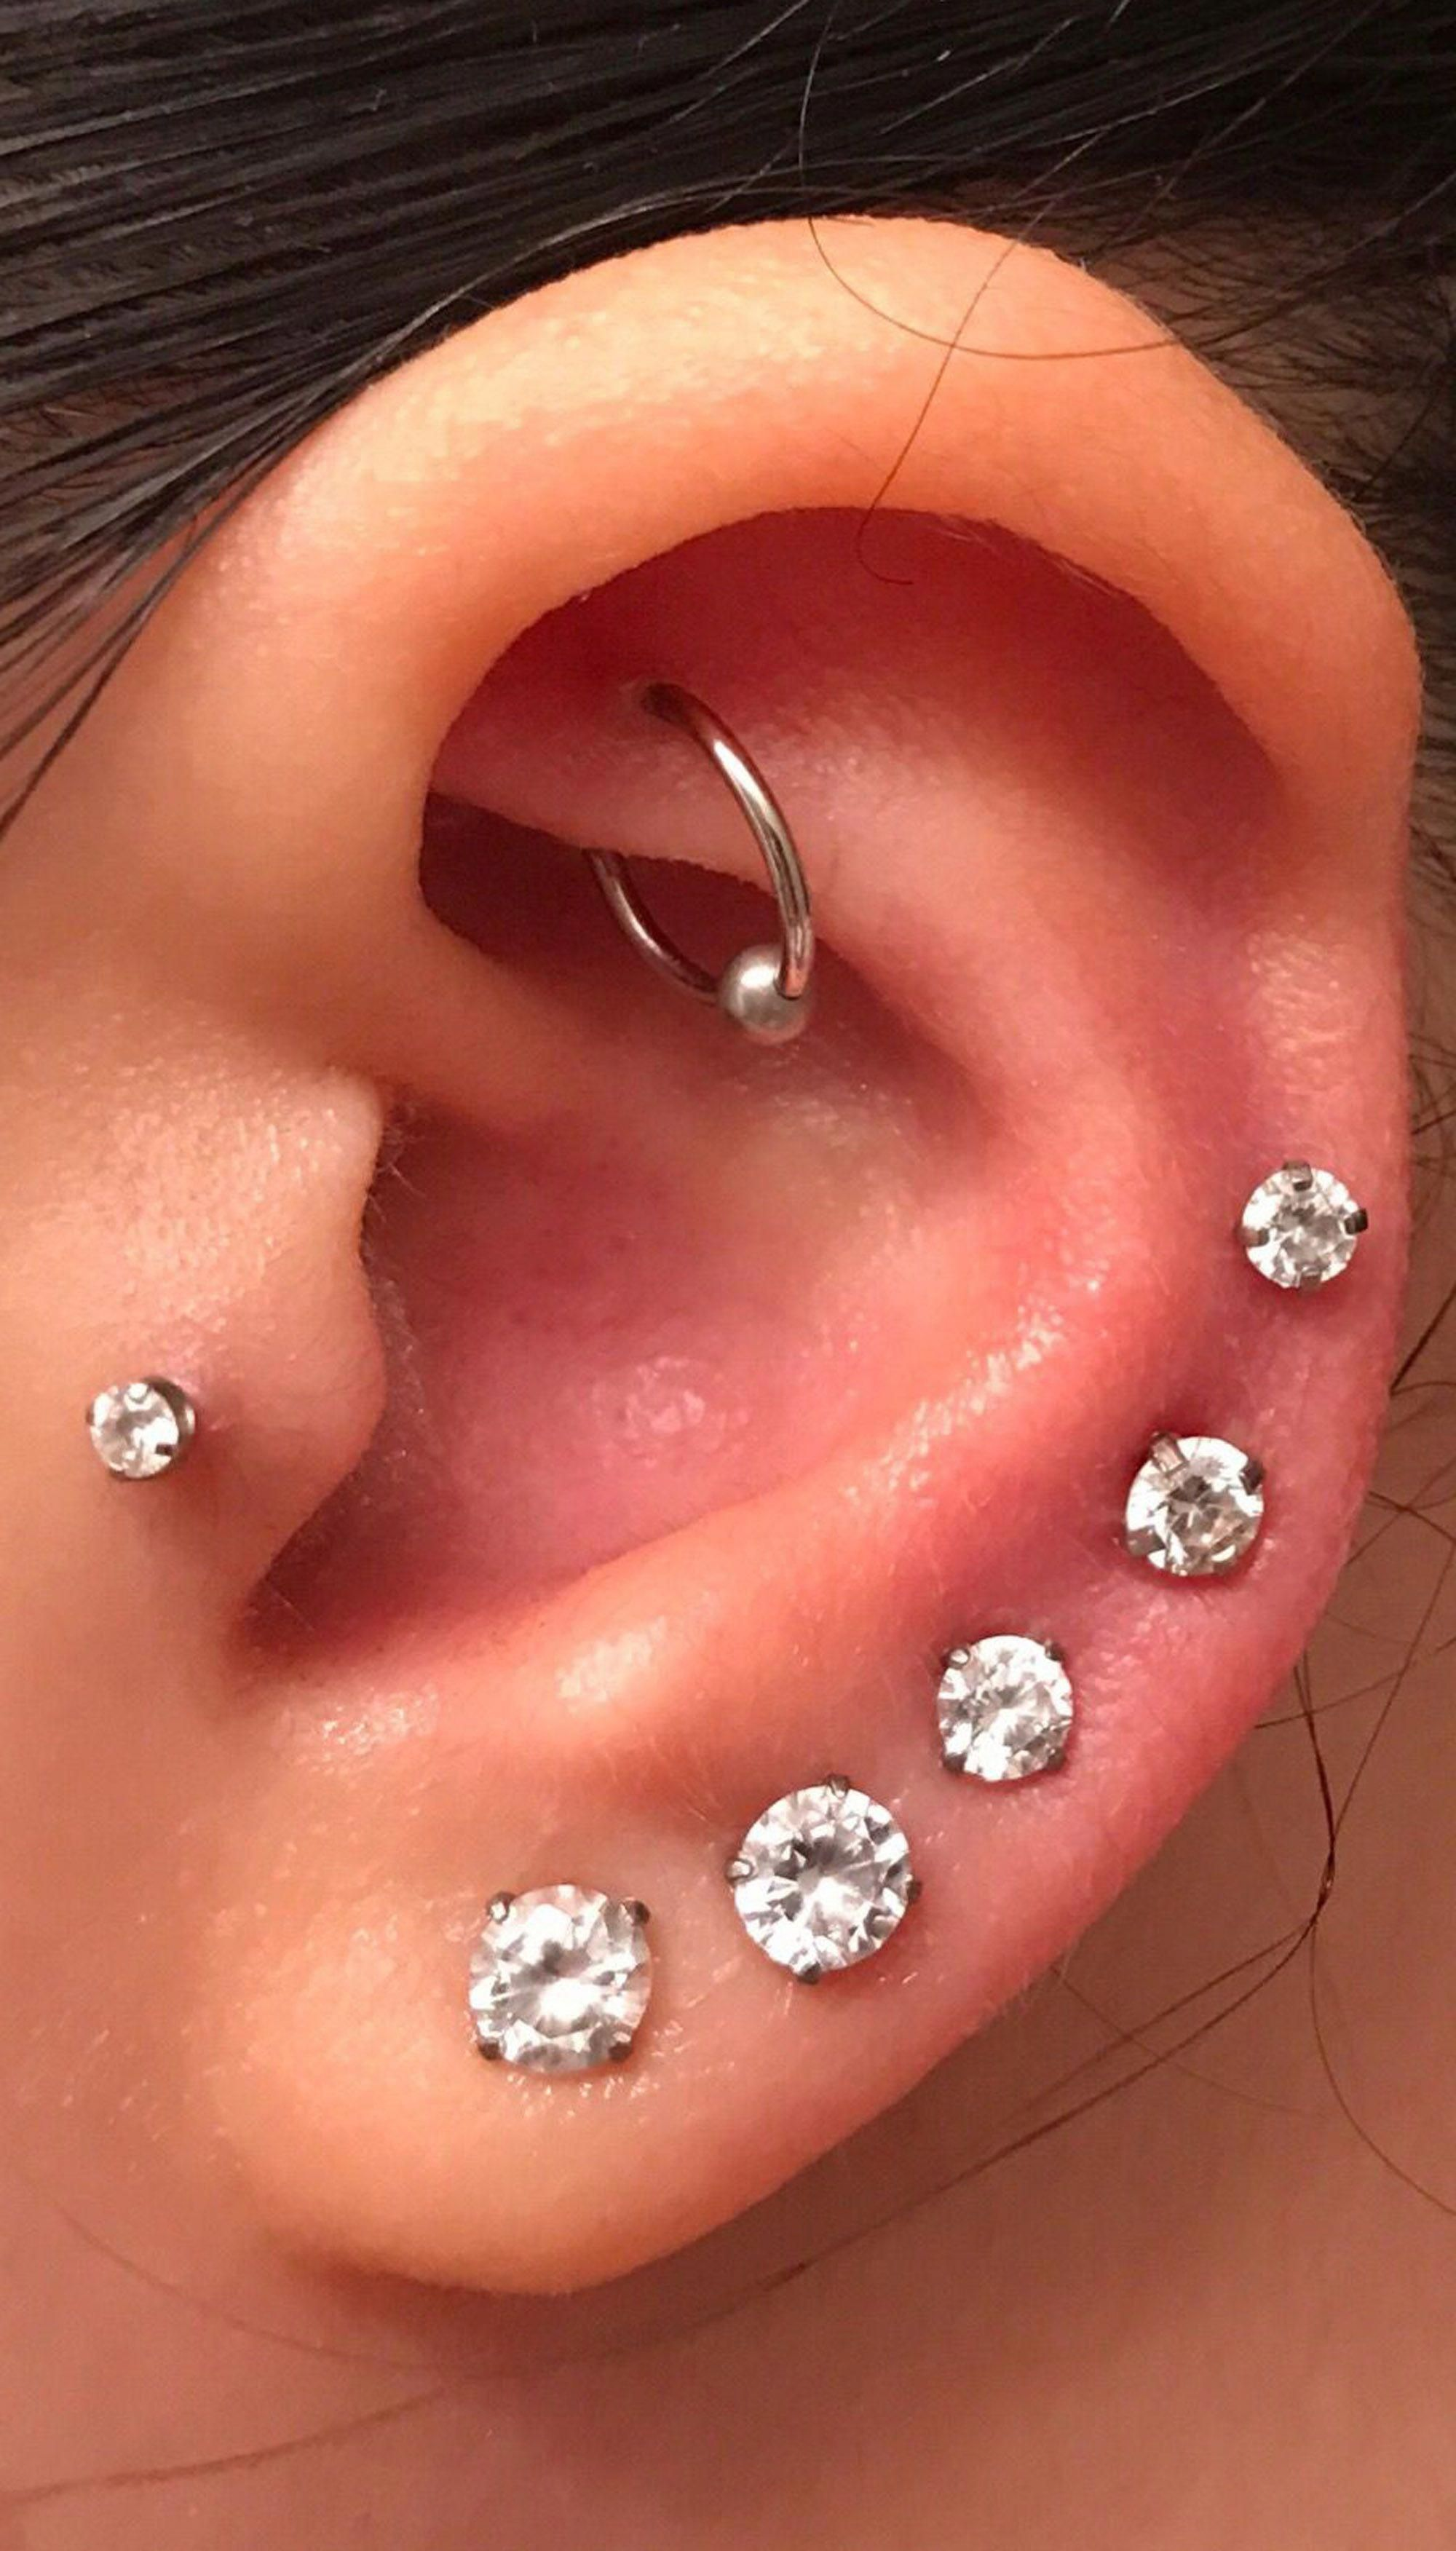 Nose piercing cover up  cute all the way around multiple ear piercing ideas for women